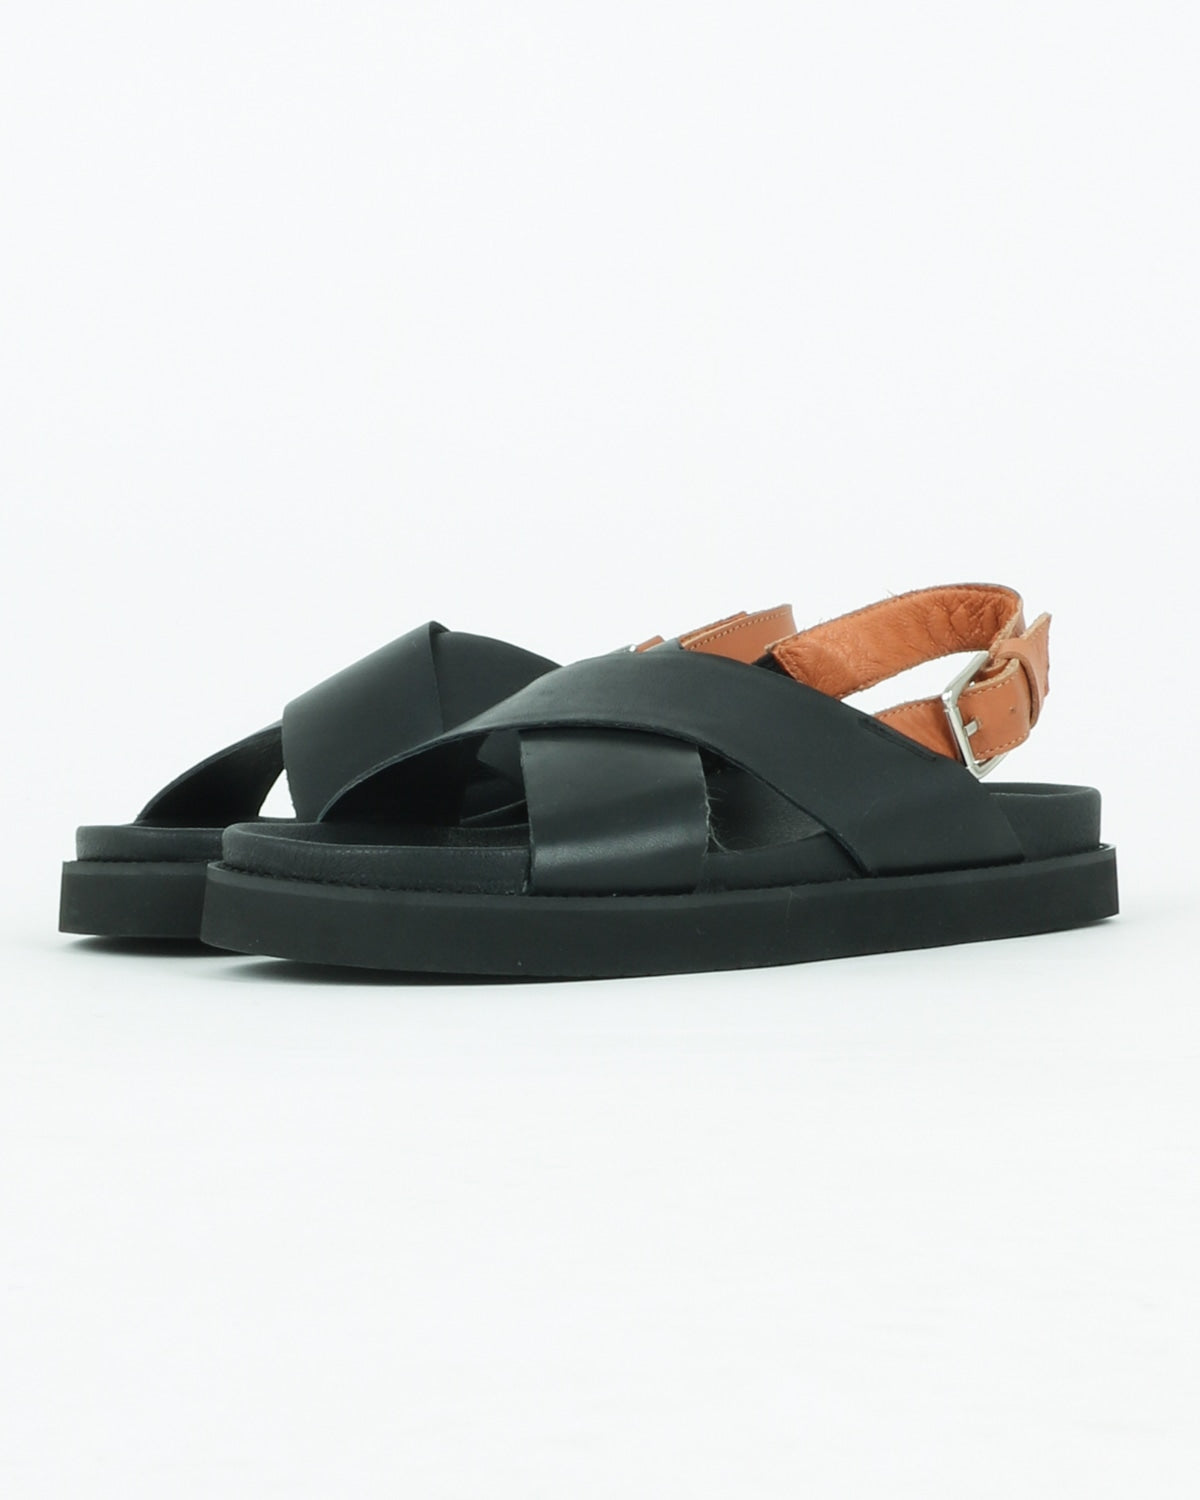 Yodo Sandals, Black/Cognac Leather